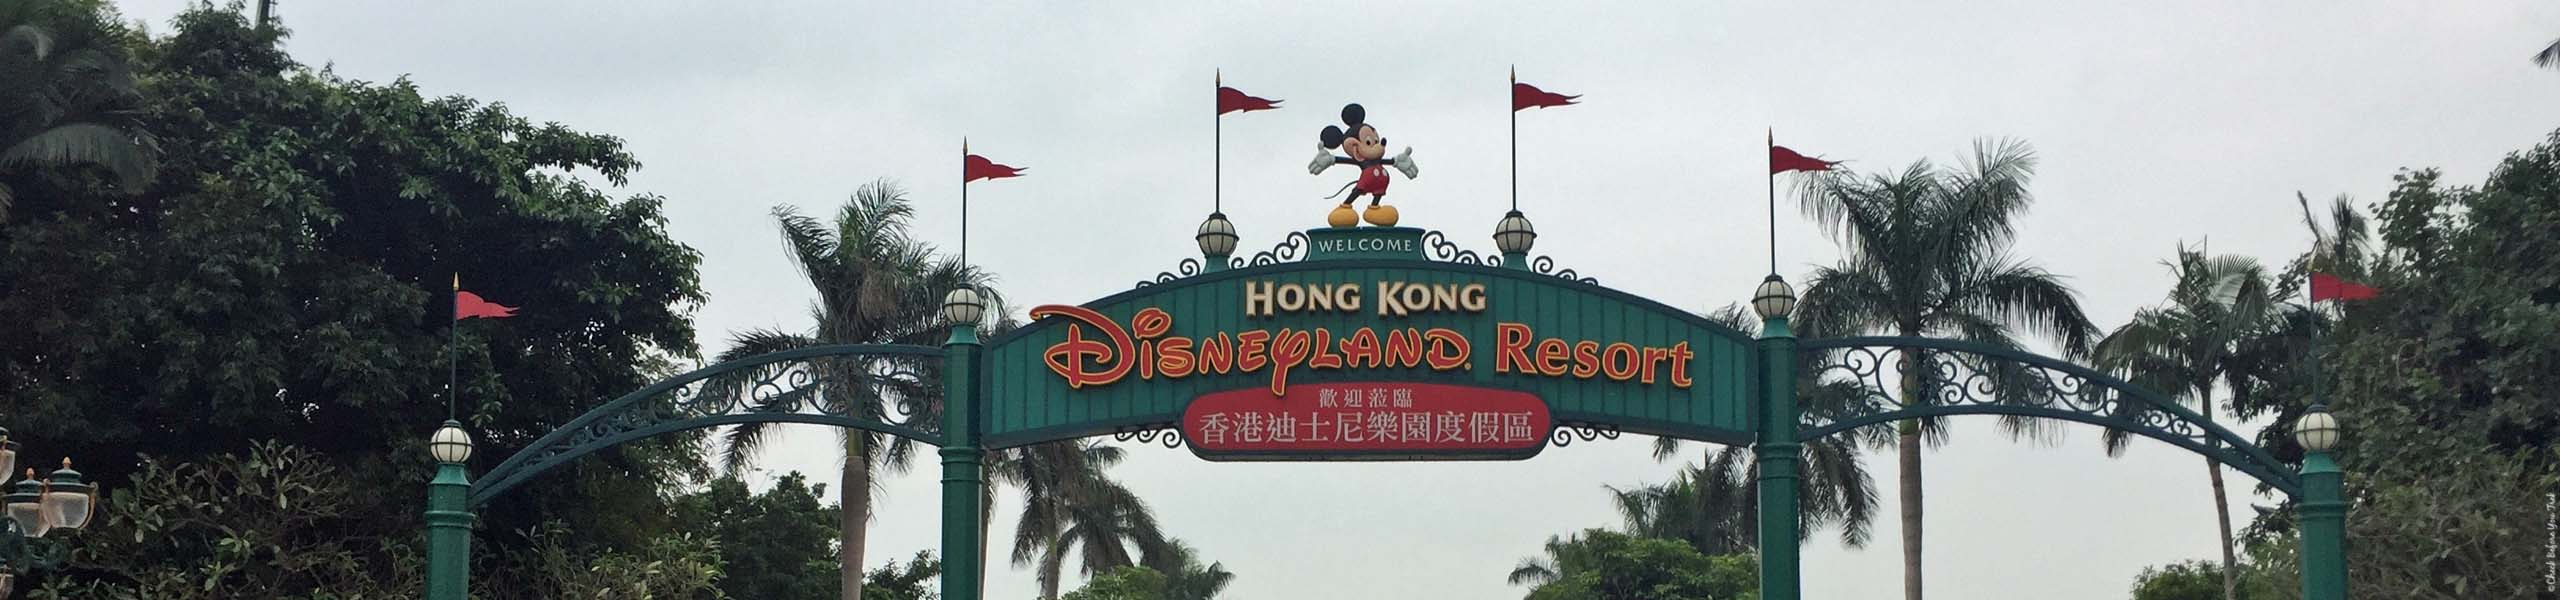 Featured Photo for article on Hong Kong Disneyland - Hong Kong, China